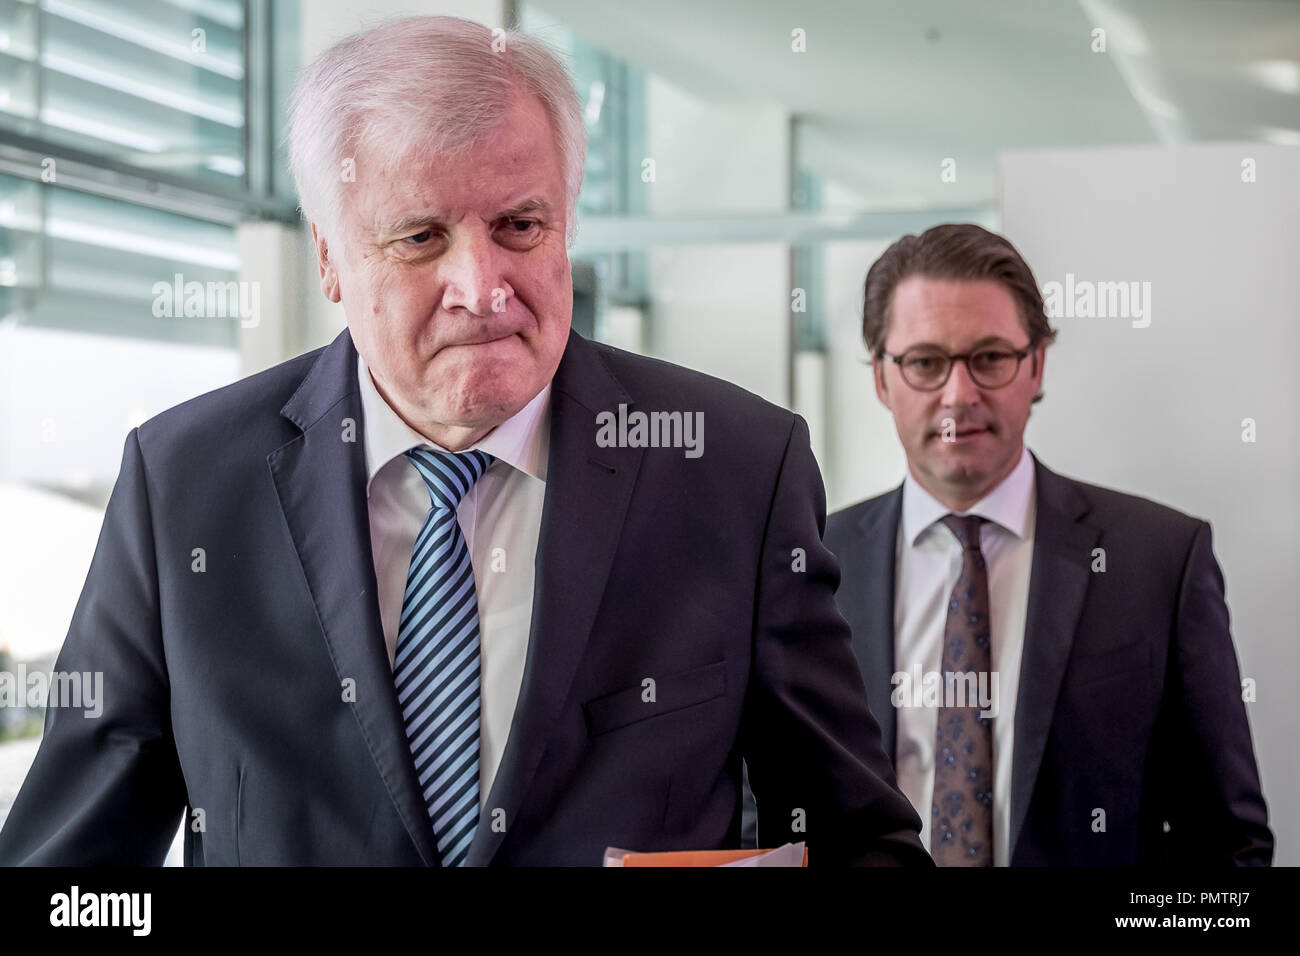 19 September 2018, Berlin: Horst Seehofer (CSU), Federal Minister of the Interior, Home and Building, followed by Andreas Scheuer (CSU), Federal Minister of Transport and Digital Infrastructure, at the meeting of the Federal Cabinet in the Chancellery. Photo: Michael Kappeler/dpa - Stock Image